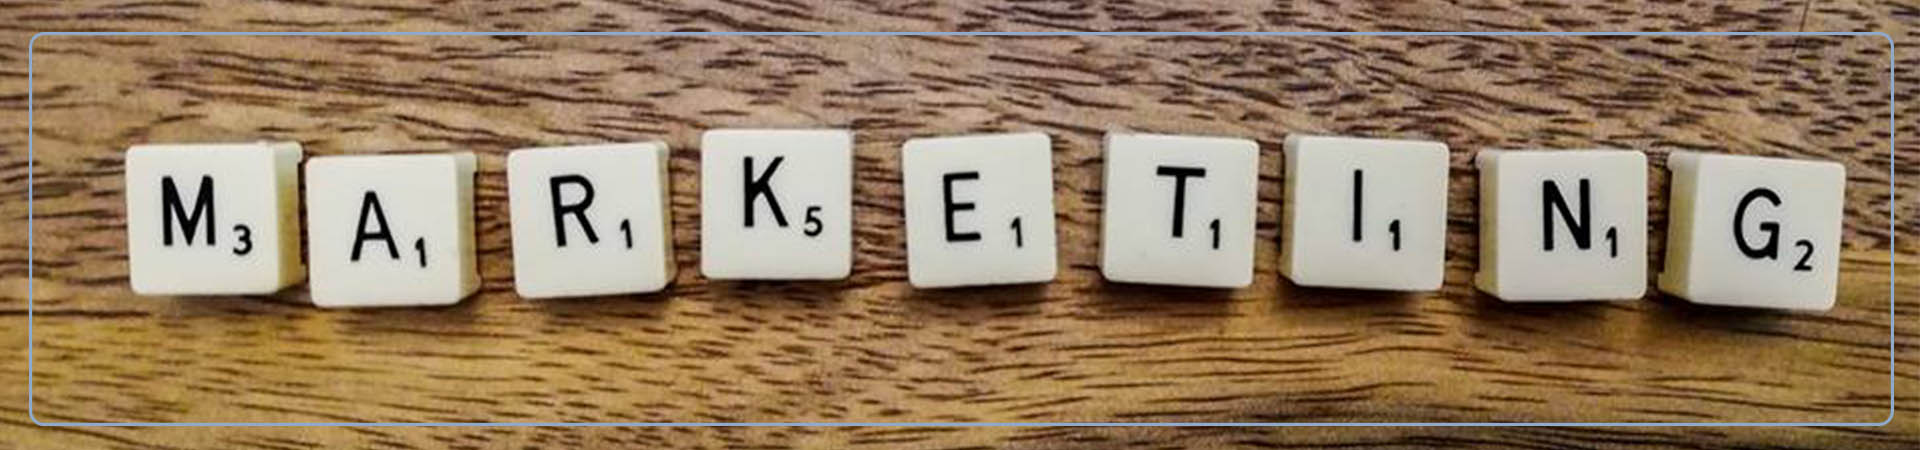 Empower Marketing scrabble